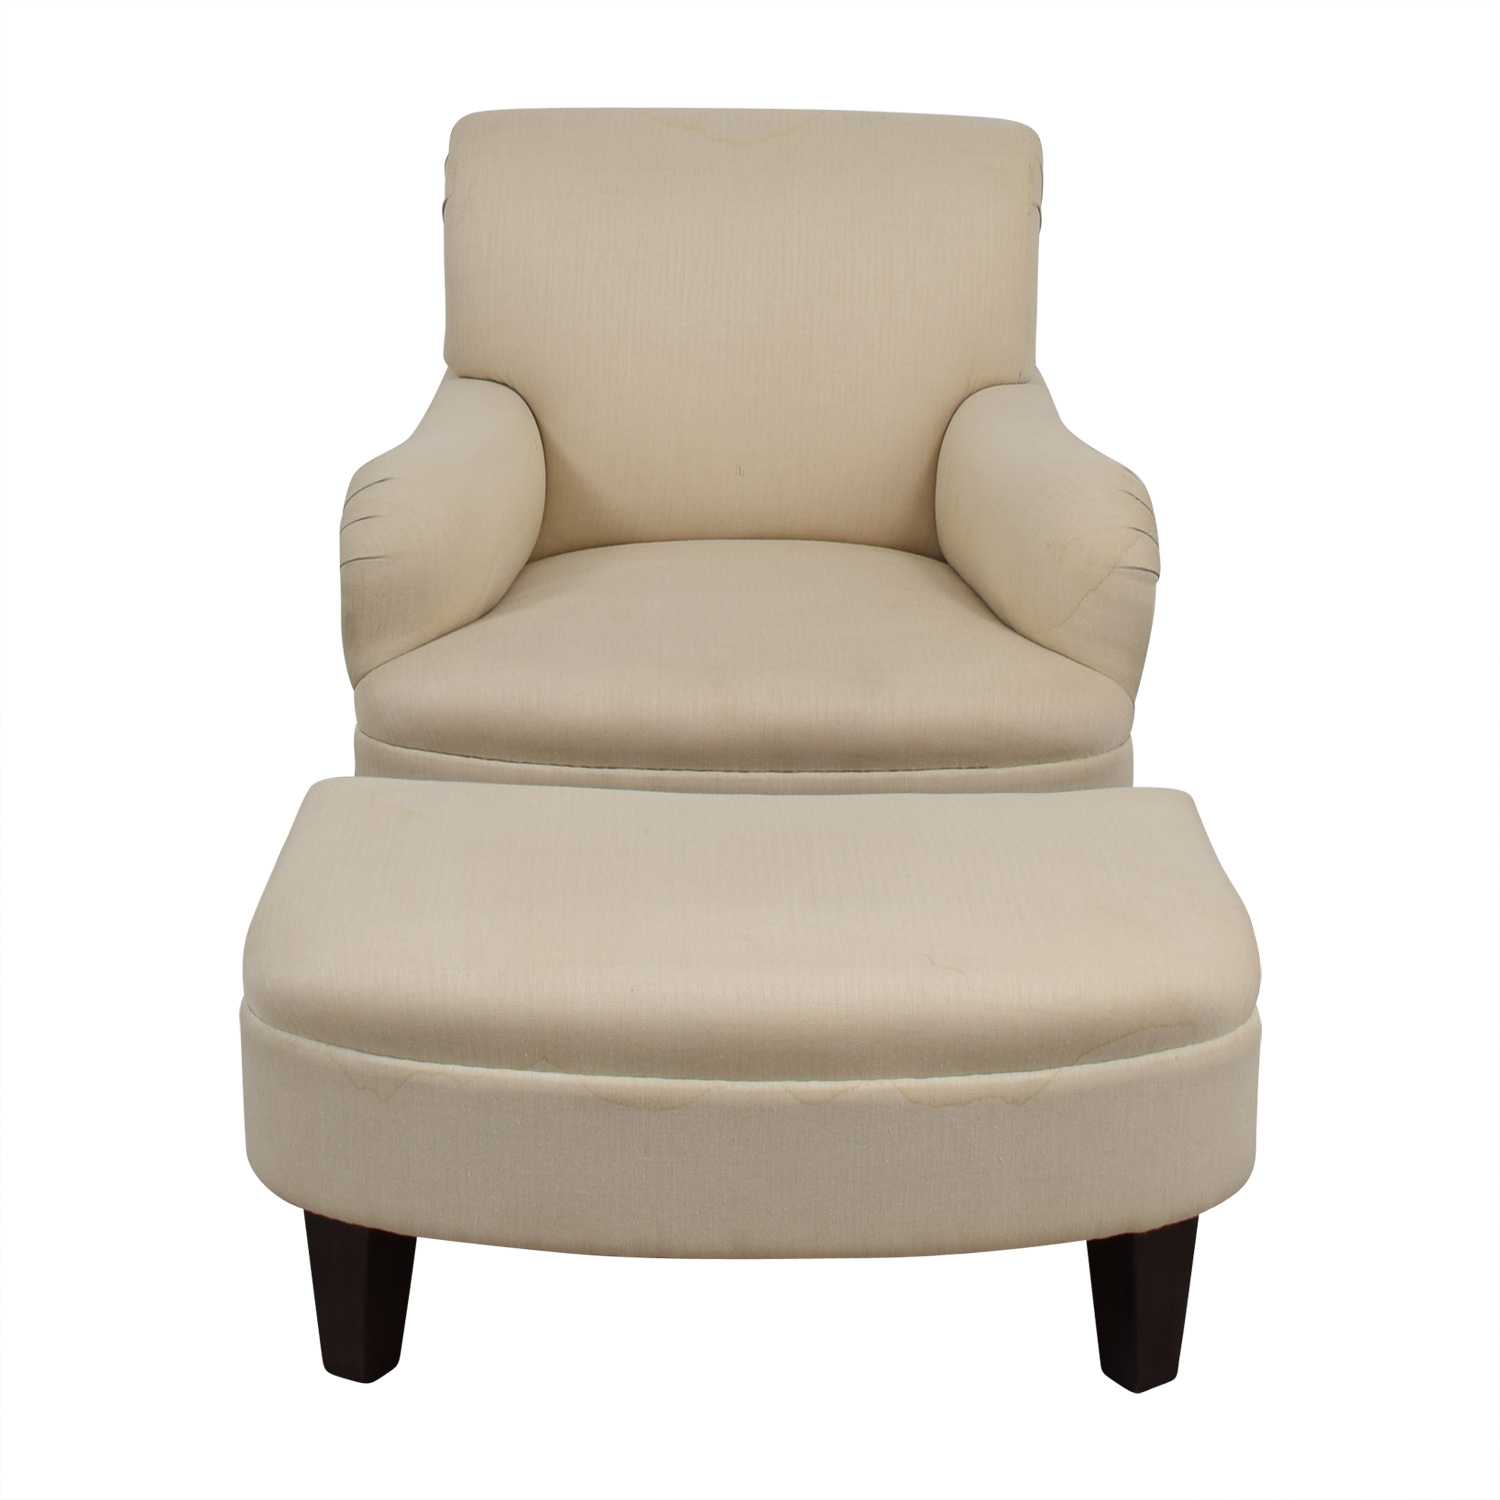 shop Furniture Masters Beige Herringbone Accent Chair with Ottoman Furniture Masters Sofas